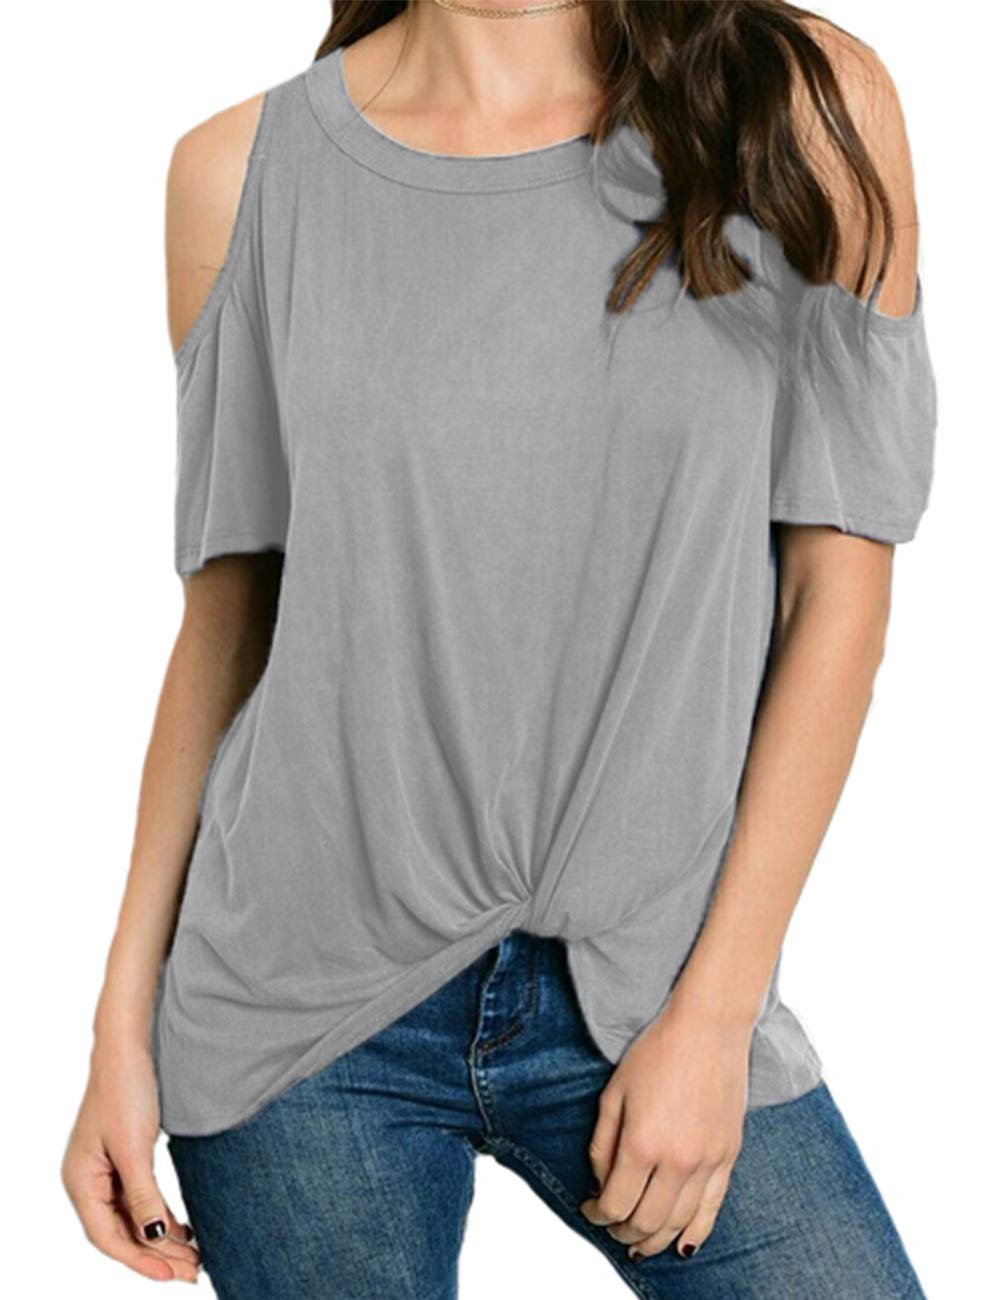 Eanklosco Women's Cold Shoulder Shirt Casual Short Sleeve T-Shirt Summer Twist Knot Front Tunic Tops (XL, Gray)